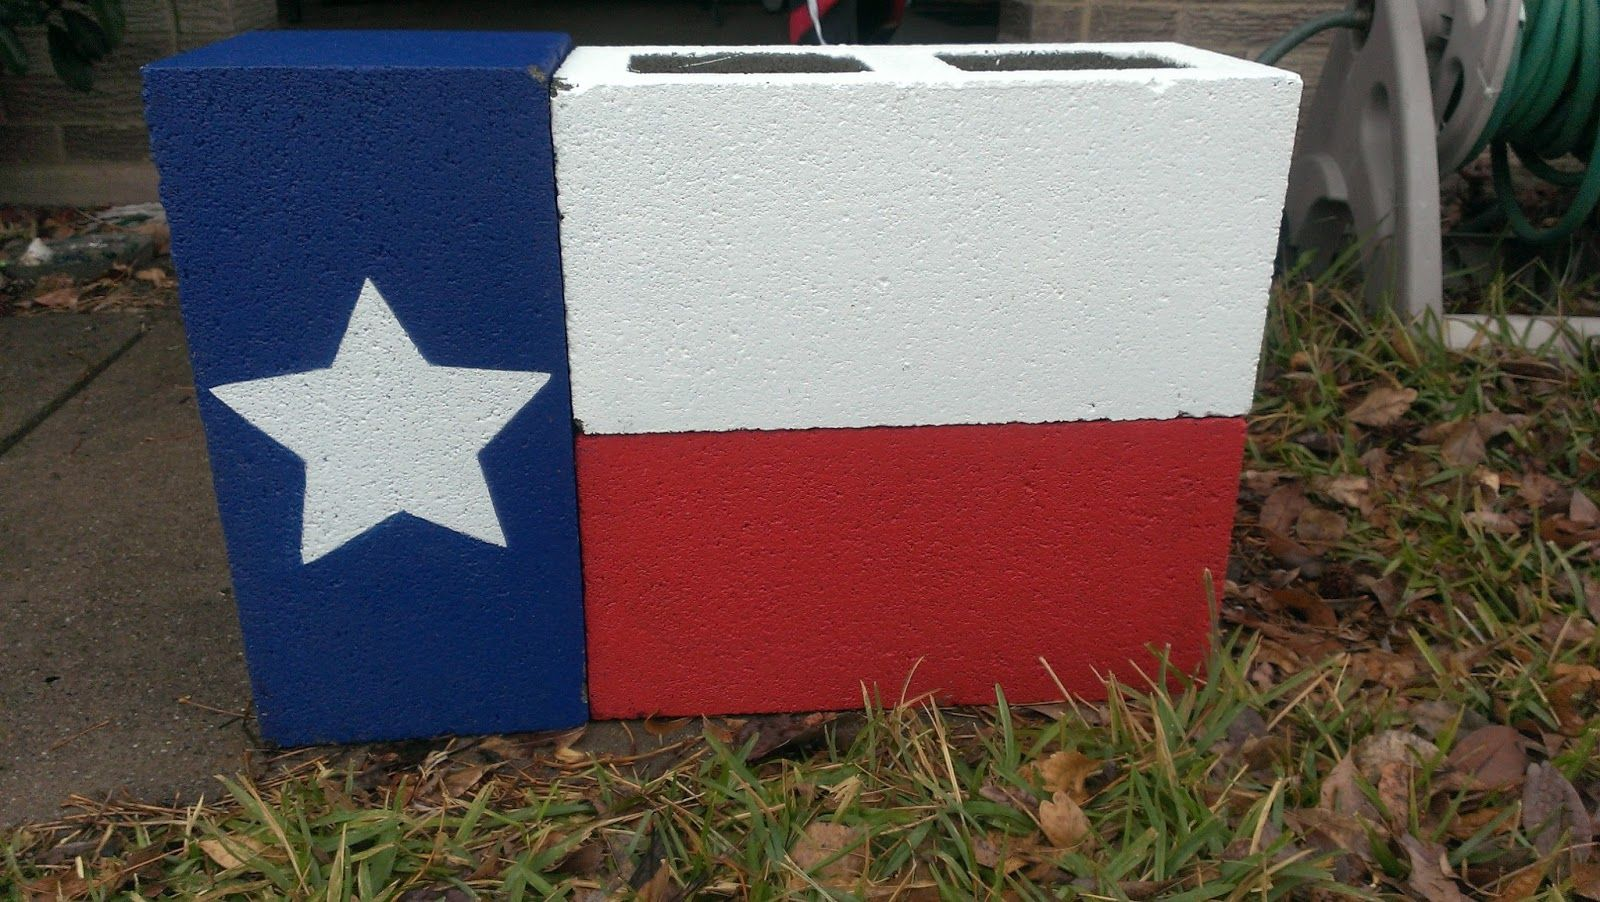 Pin By Dee Stafford On Make It Texas Crafts Texas Theme Texas Flag Decor